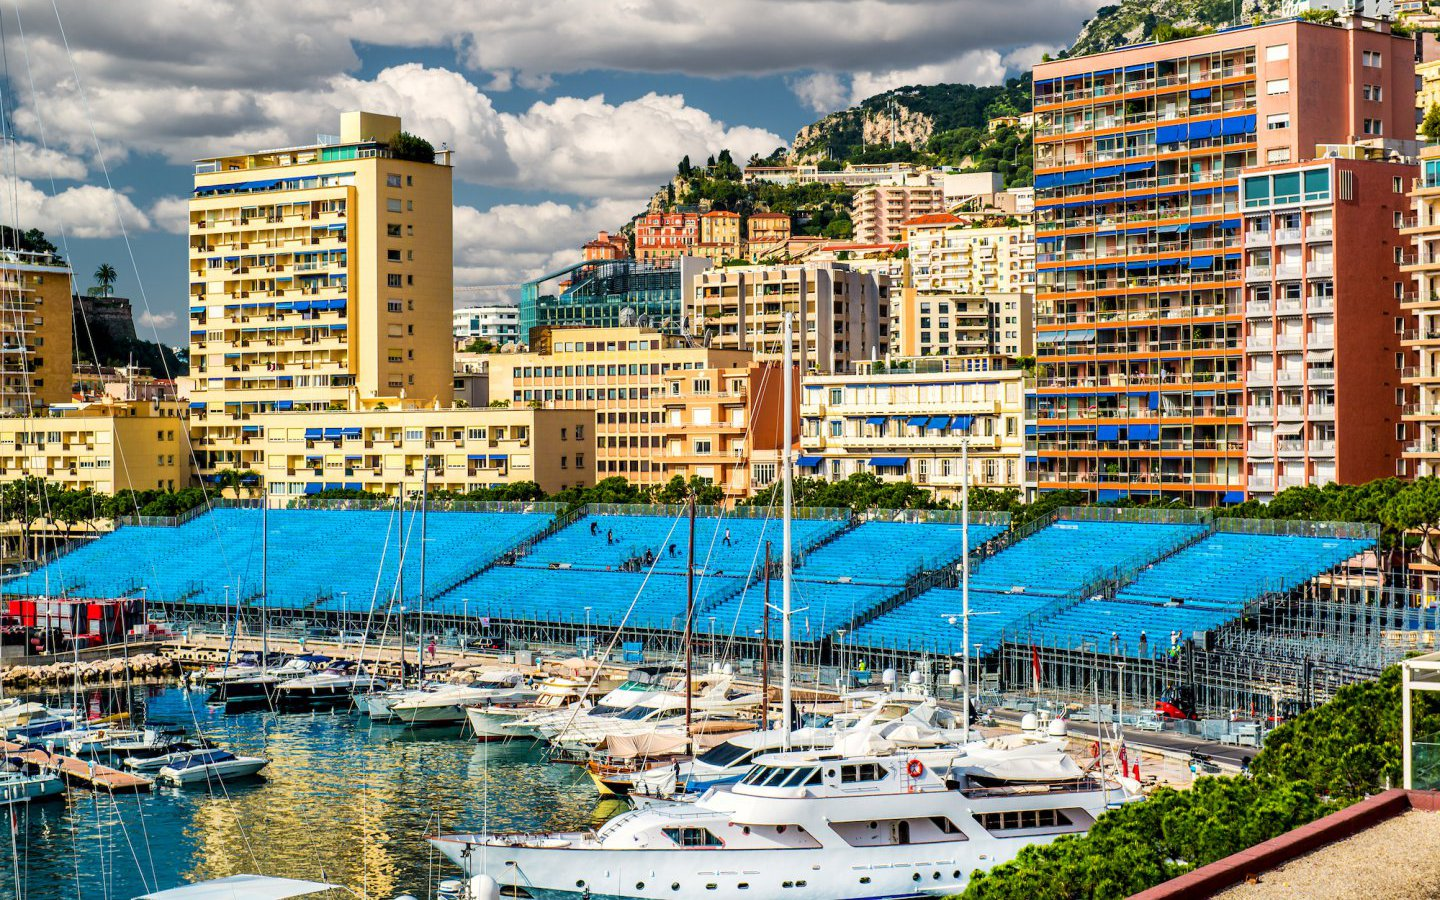 Fab setting for the Formula One Monaco Grand Prix